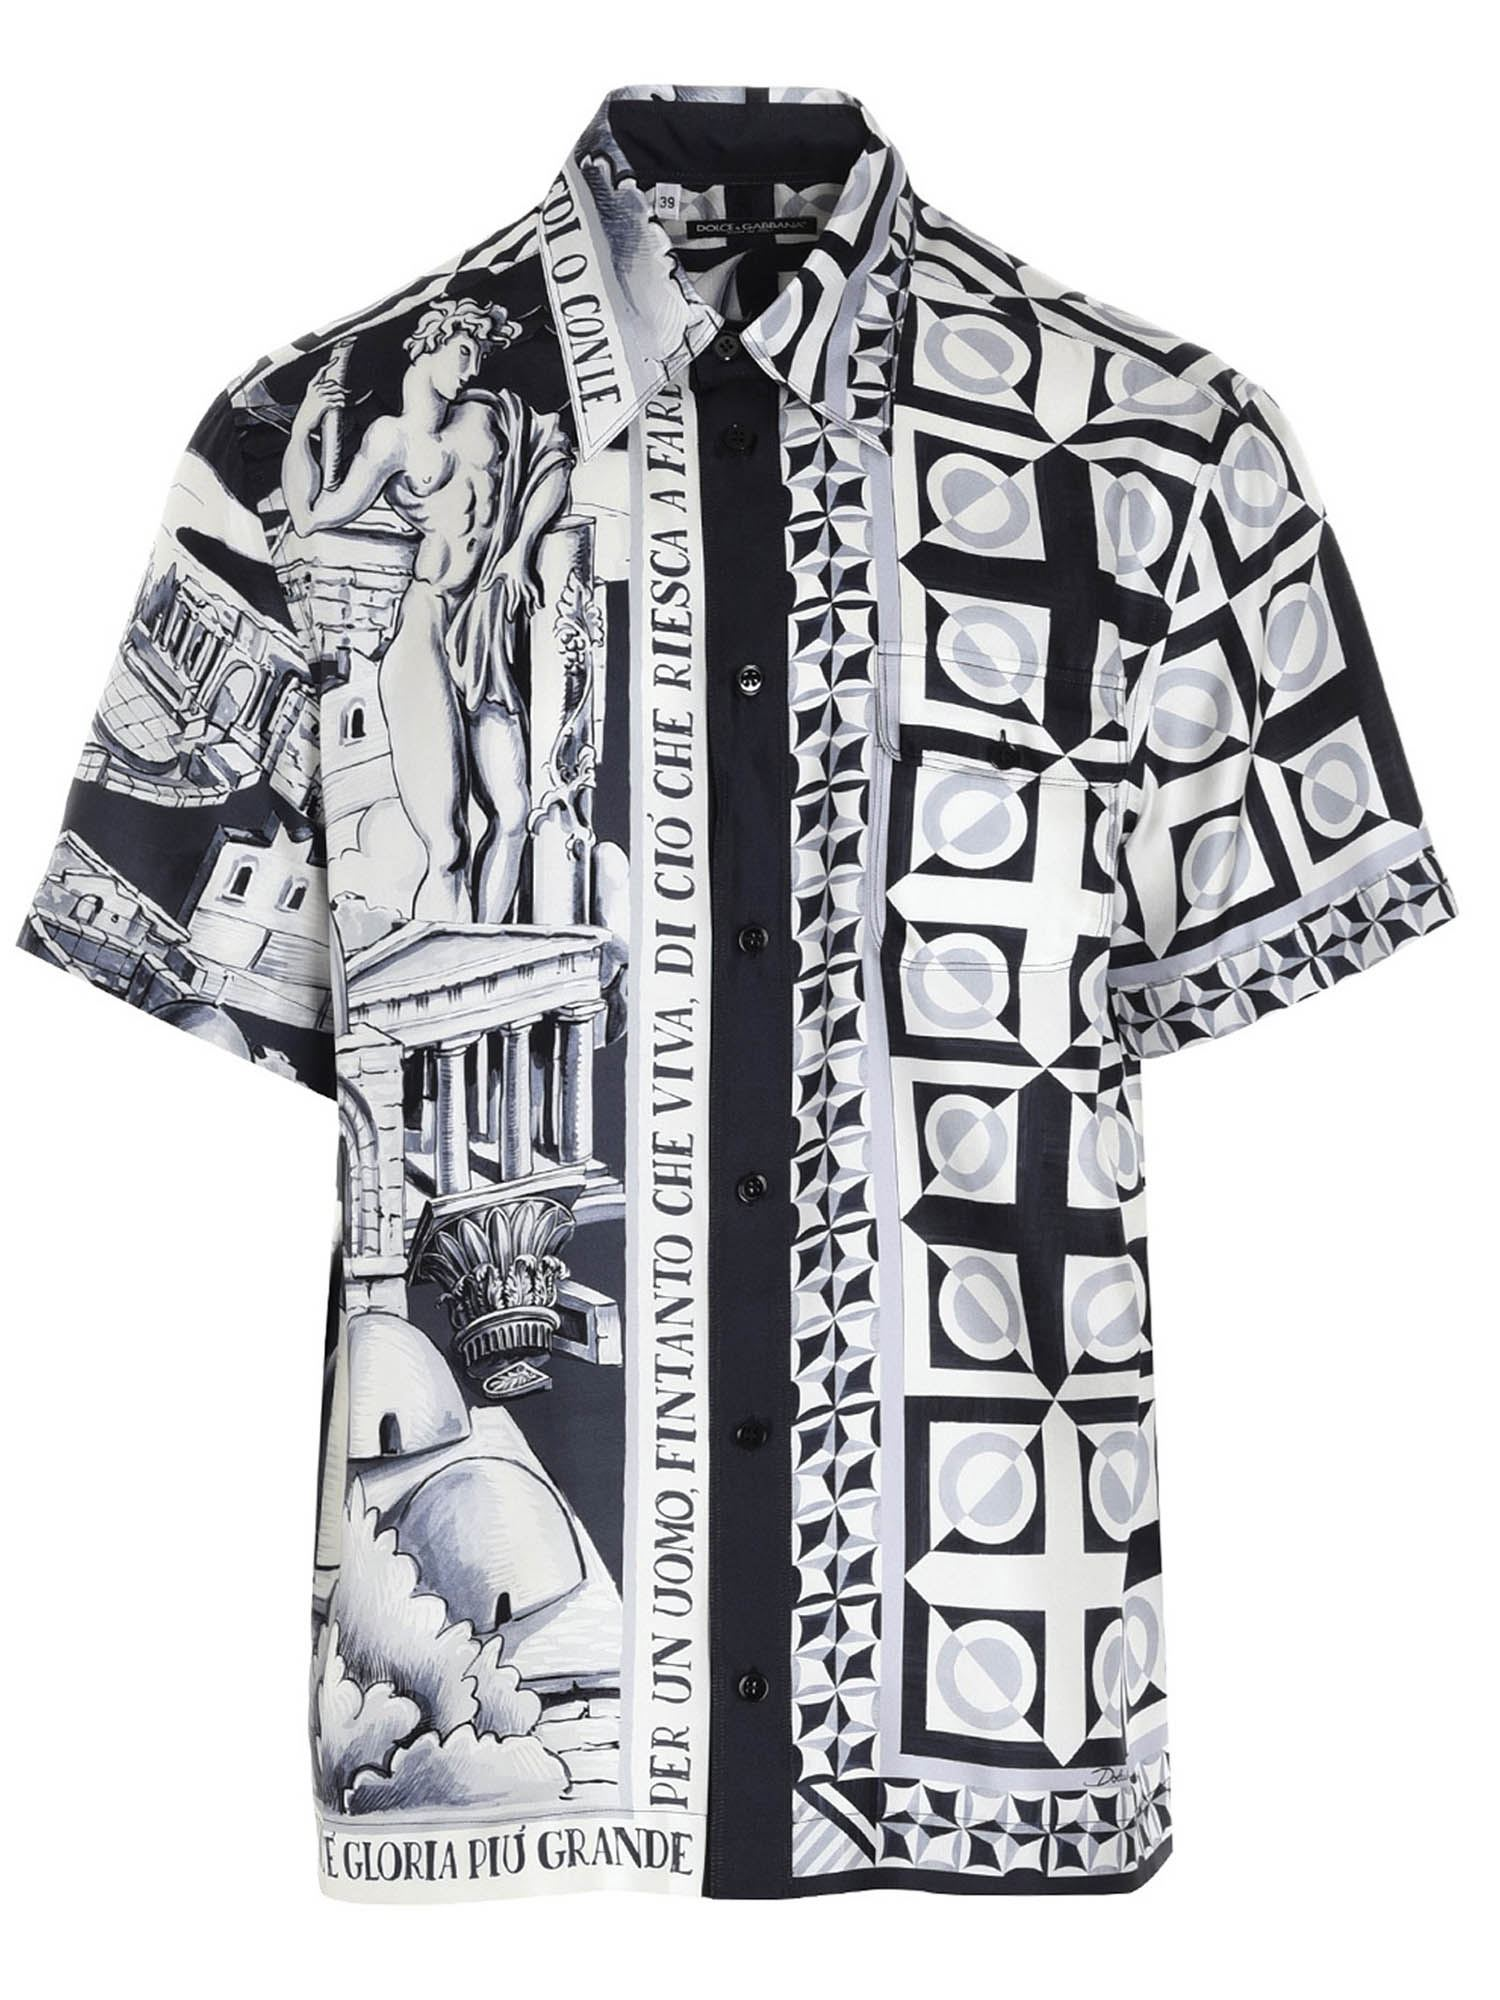 Dolce & Gabbana Silks MAIOLICA PRINT SHIRT IN WHITE AND BLACK